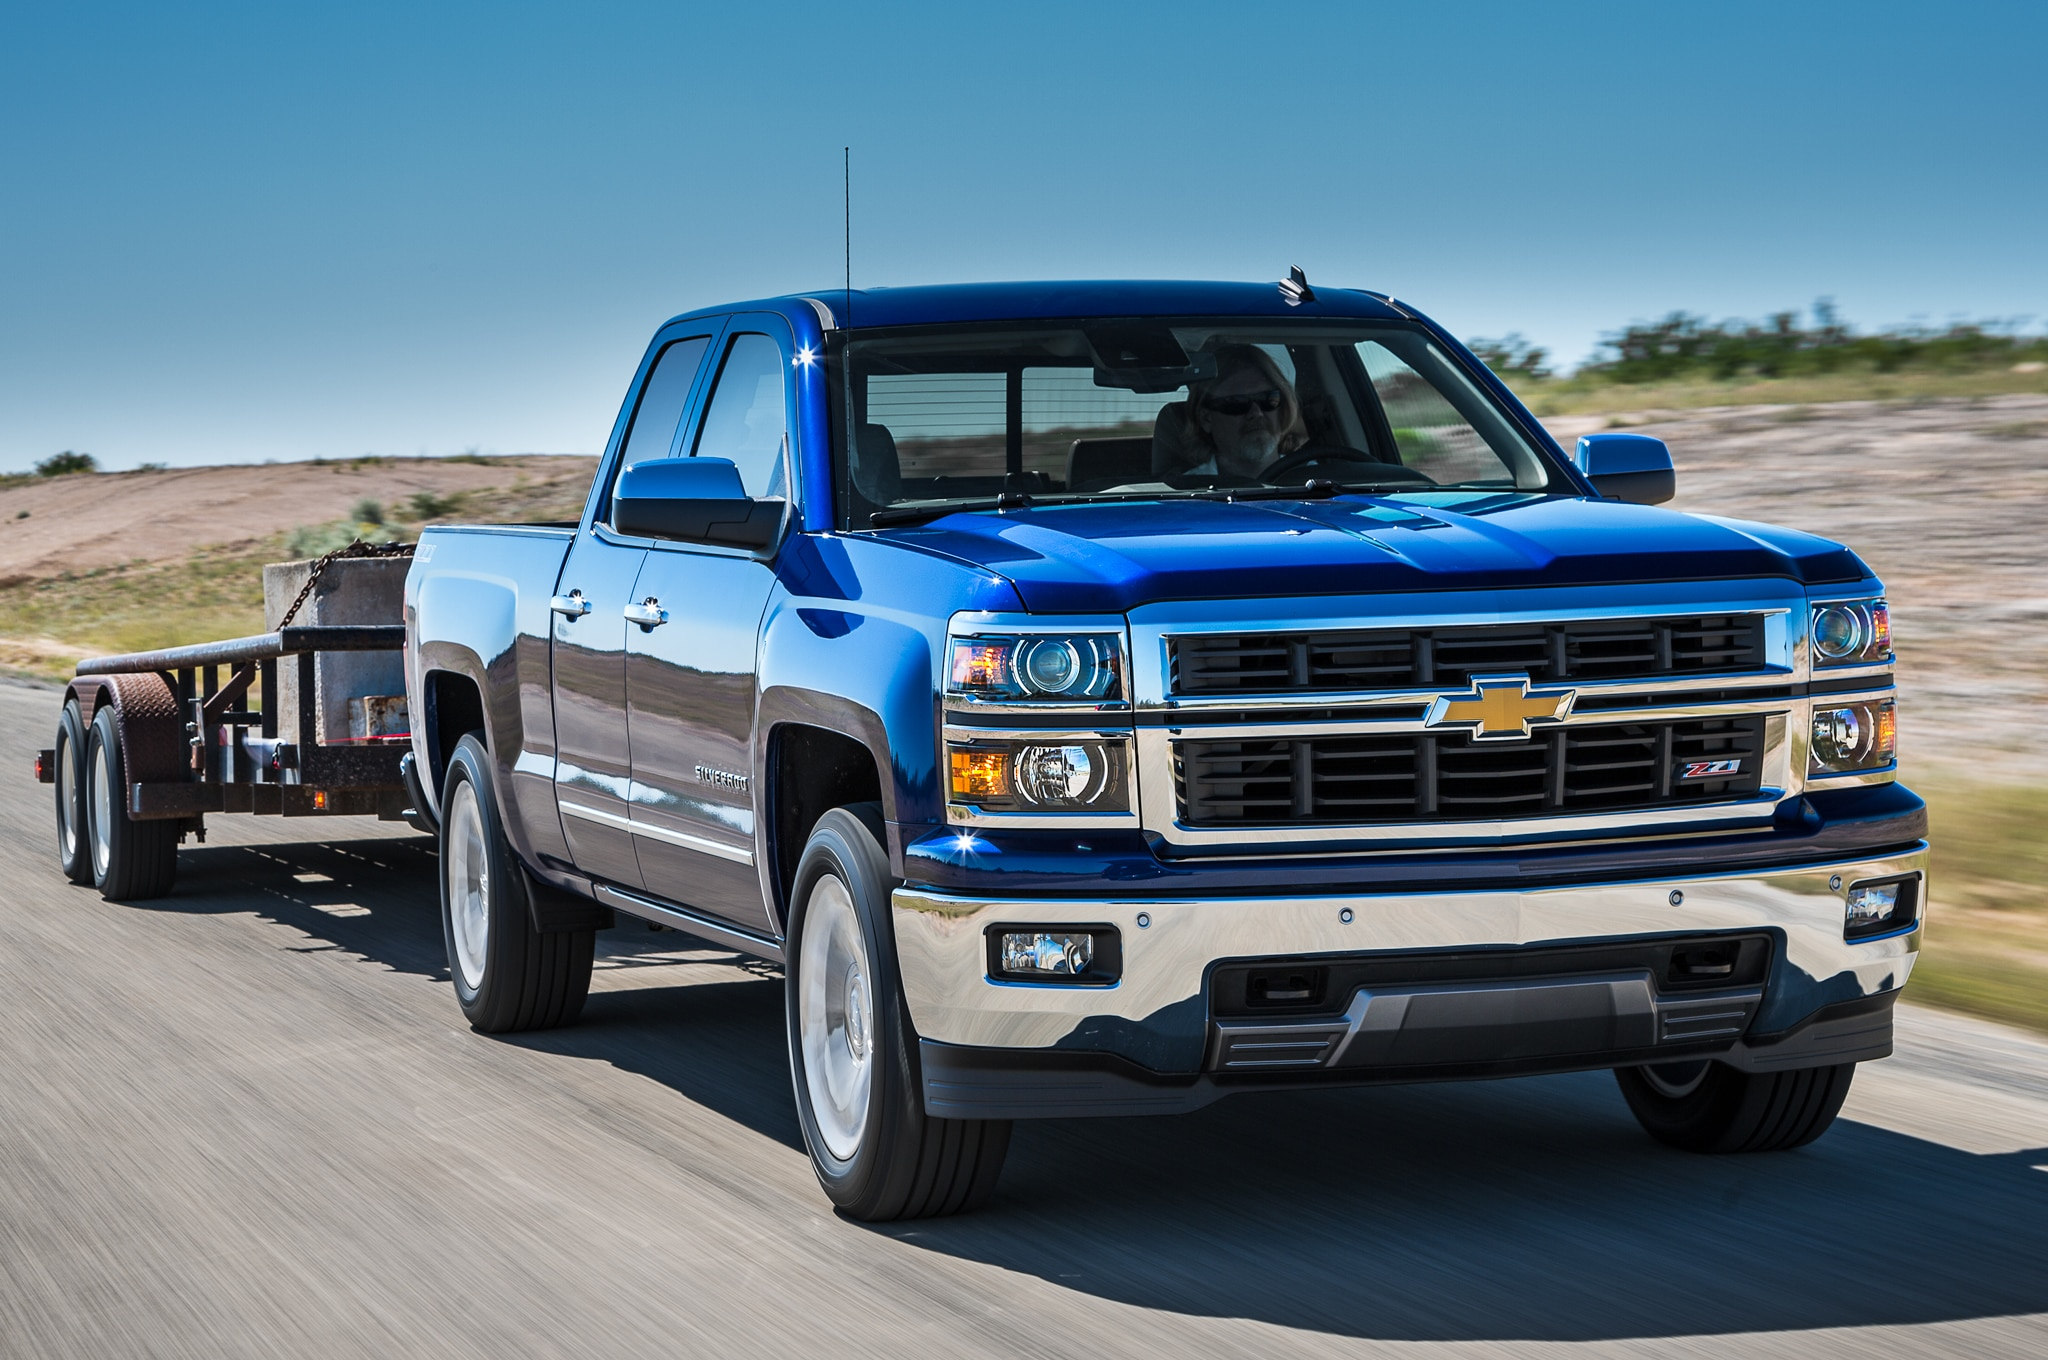 2014 Chevrolet Silverado Z71 front view towing